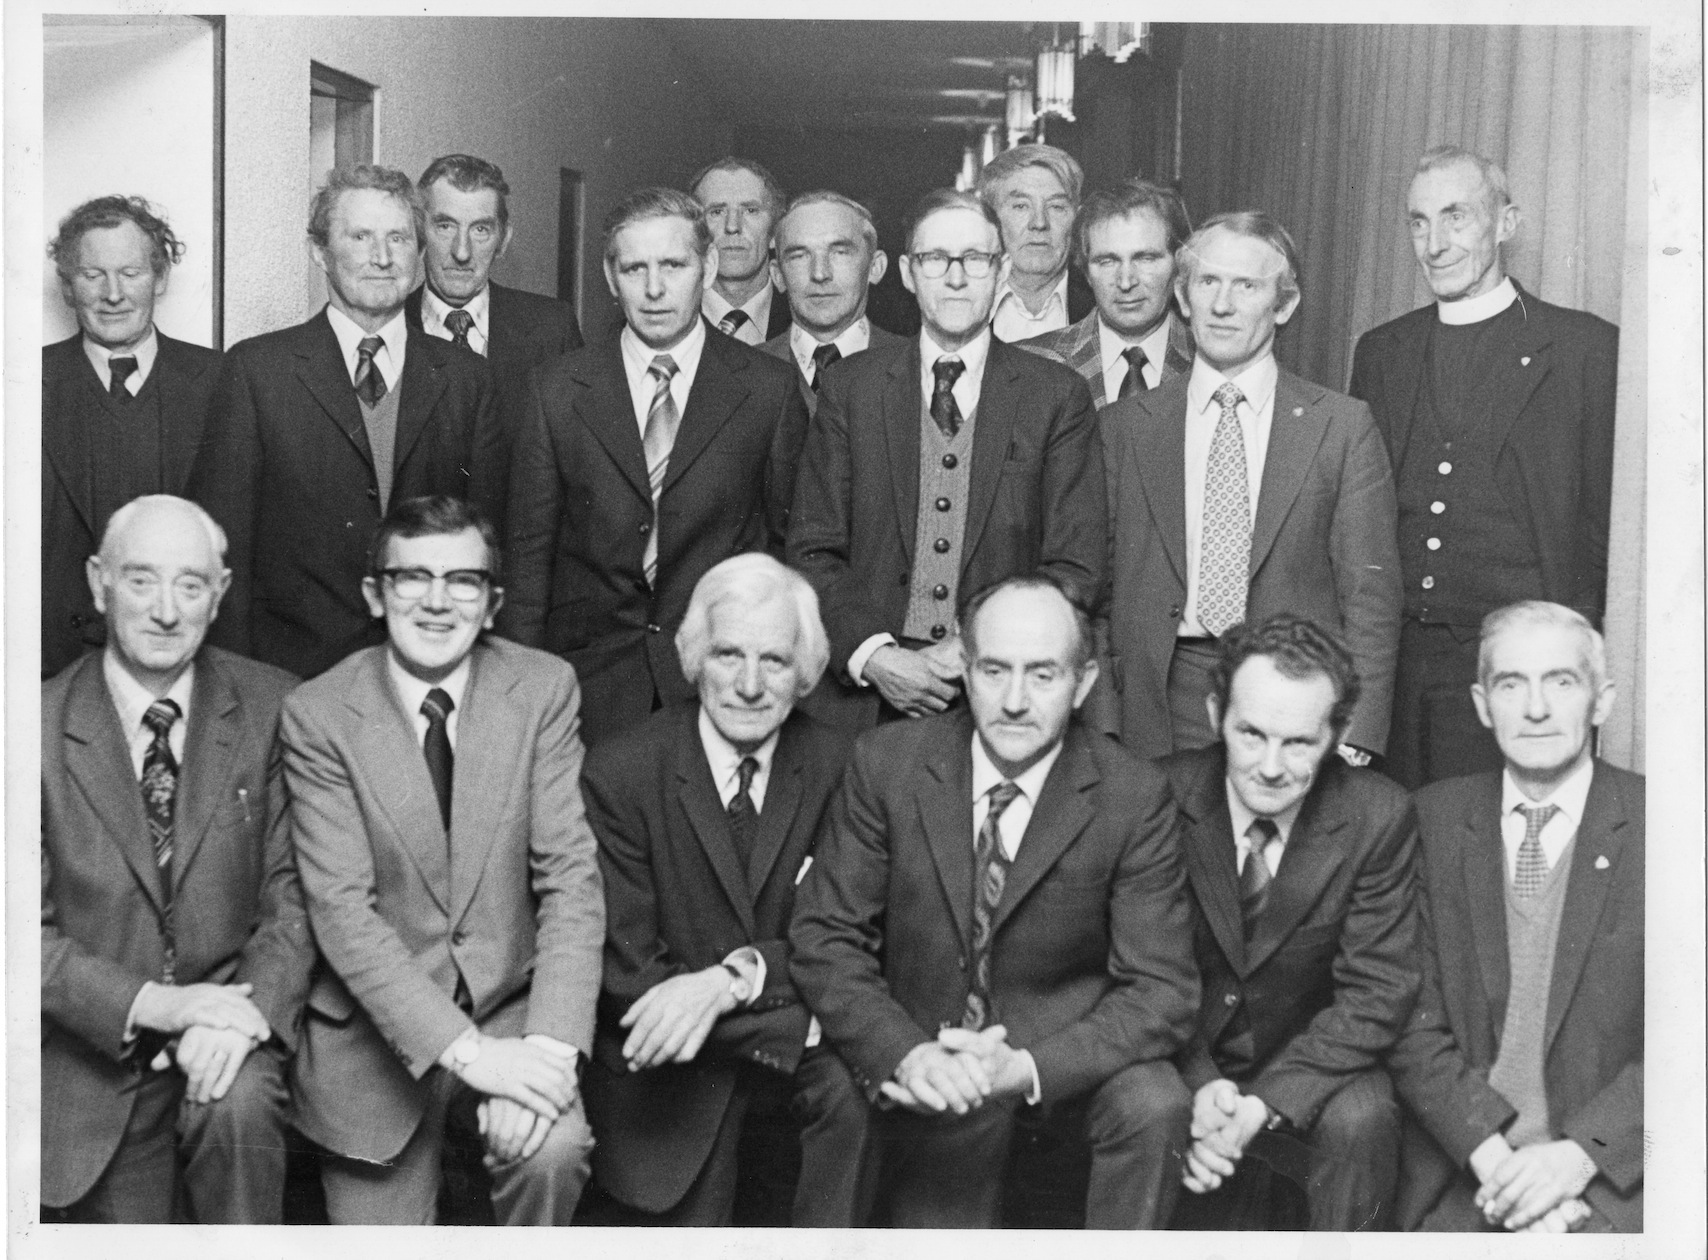 Some members of Abbey Muintir na Tíre – front left to right: Michael Lynch, John Holohan, Connie Donnelly, John Michael Larkin, Naoise Larkin, Gerald Coniry; back left to right: Martin Mullen, Jimmy Kelly, Francis Conroy, Tony Hodgins, Tommie Joynt, Michael Burke, Thomsie Connaire, Martin Kelly, Michael Dervan, Gerard Dolan and Fr O'Reilly PP.